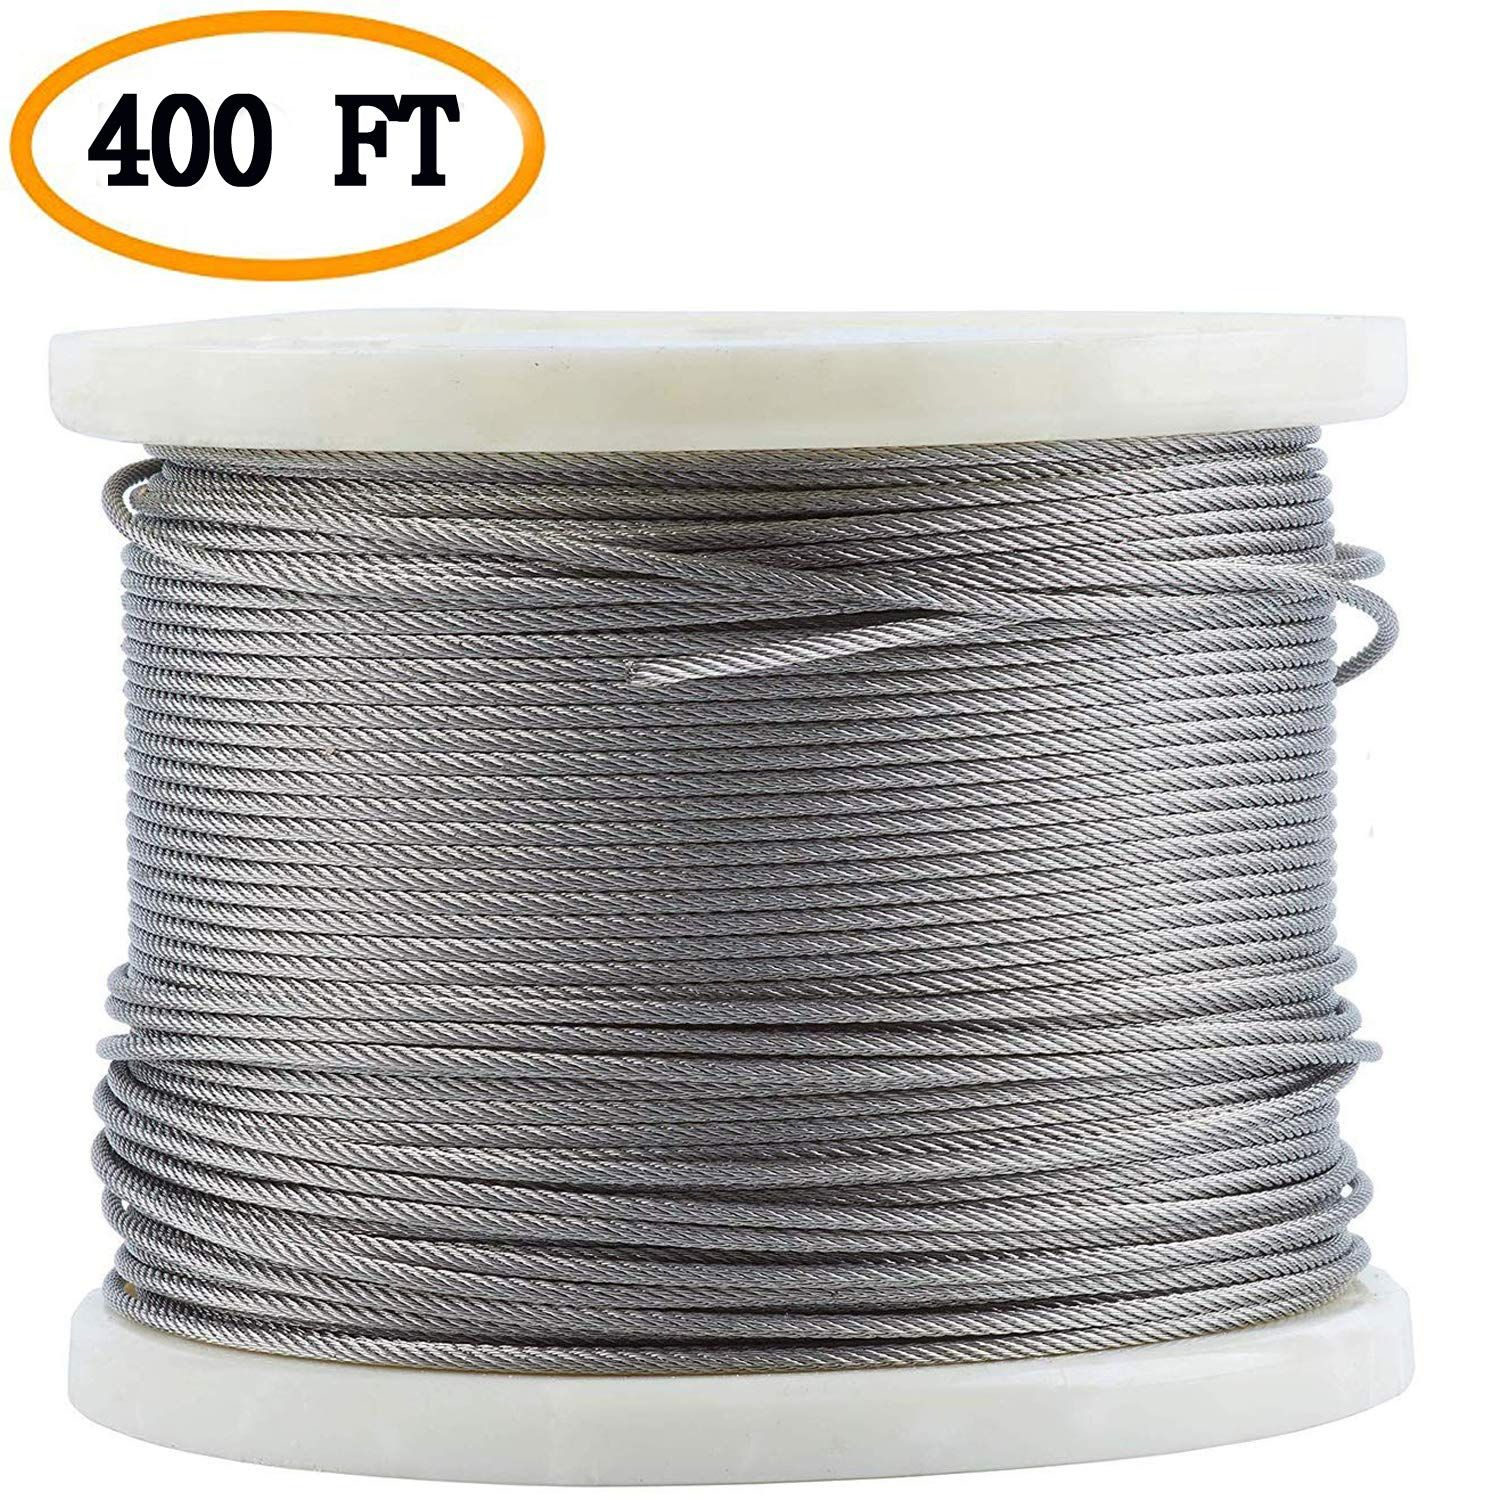 Bysn 316 1 8 Stainless Steel Cable Aircraft Wire Rope For Cable Railing Kit 7x7 400feet Lear Deck Railings Deck Railing Diy